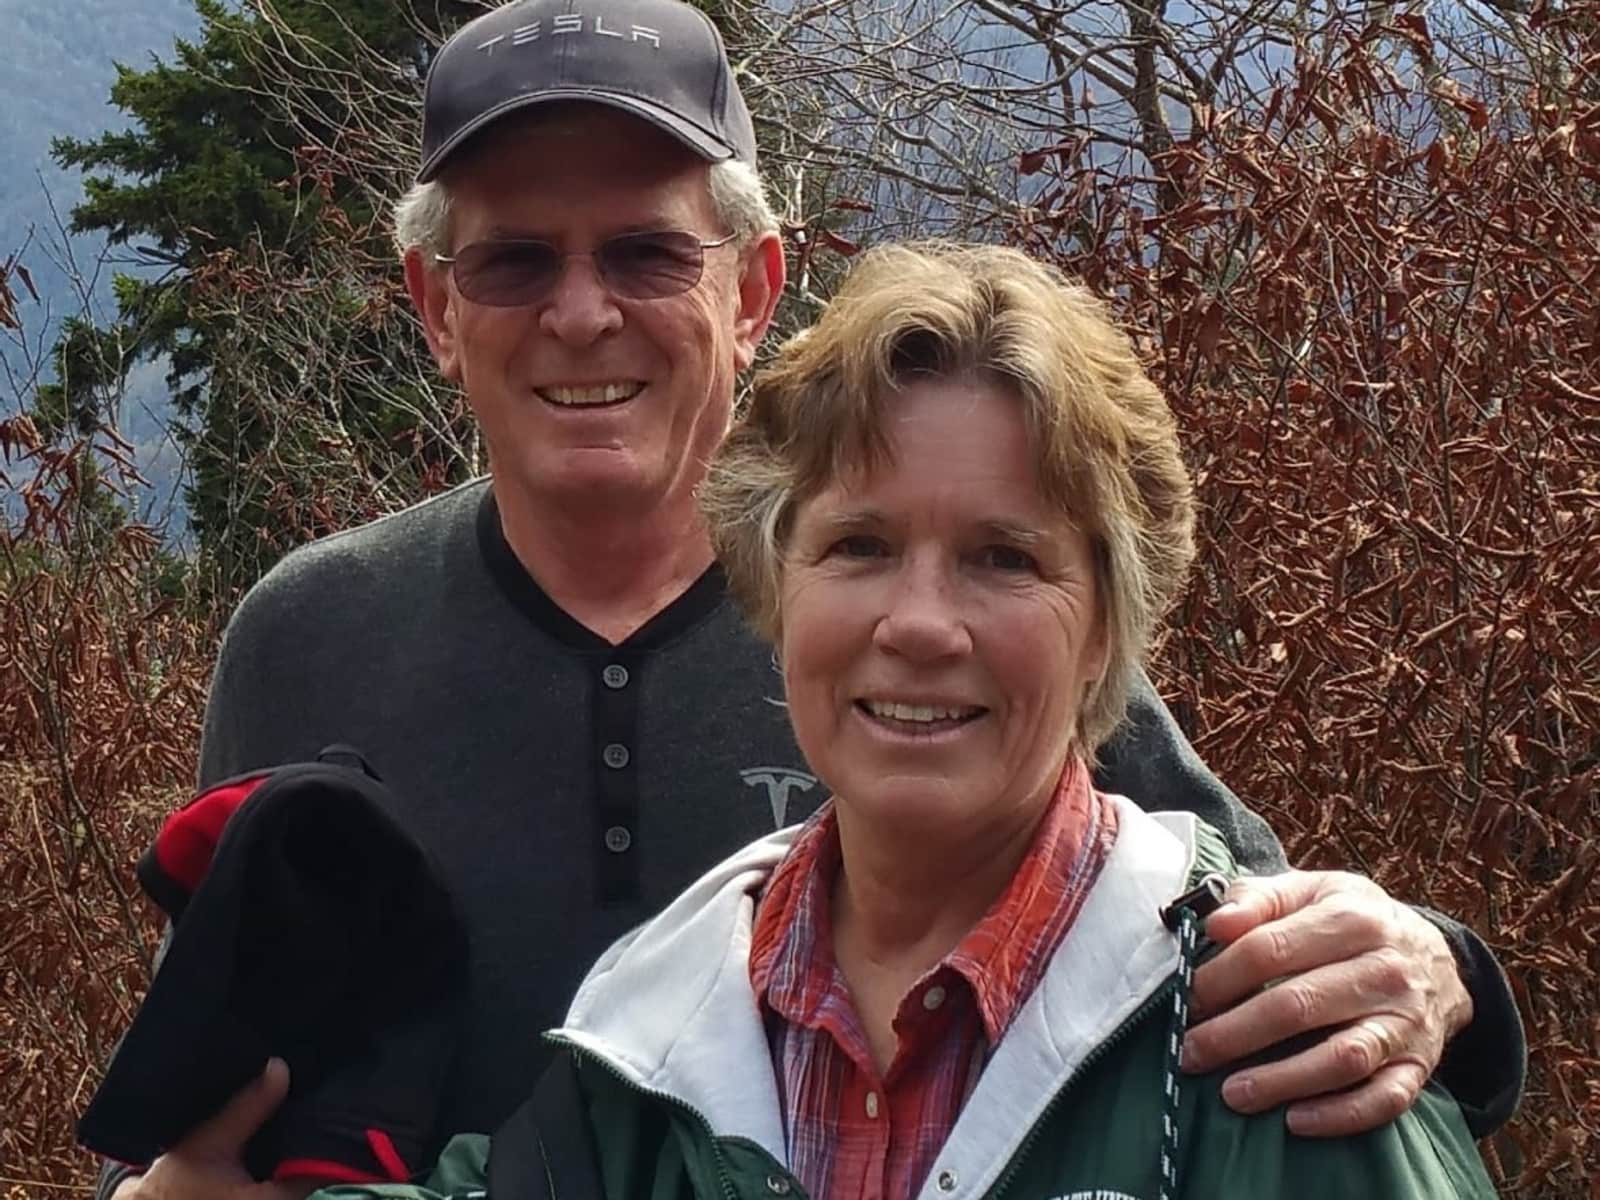 Kathy & Warren from Maquoketa, Iowa, United States